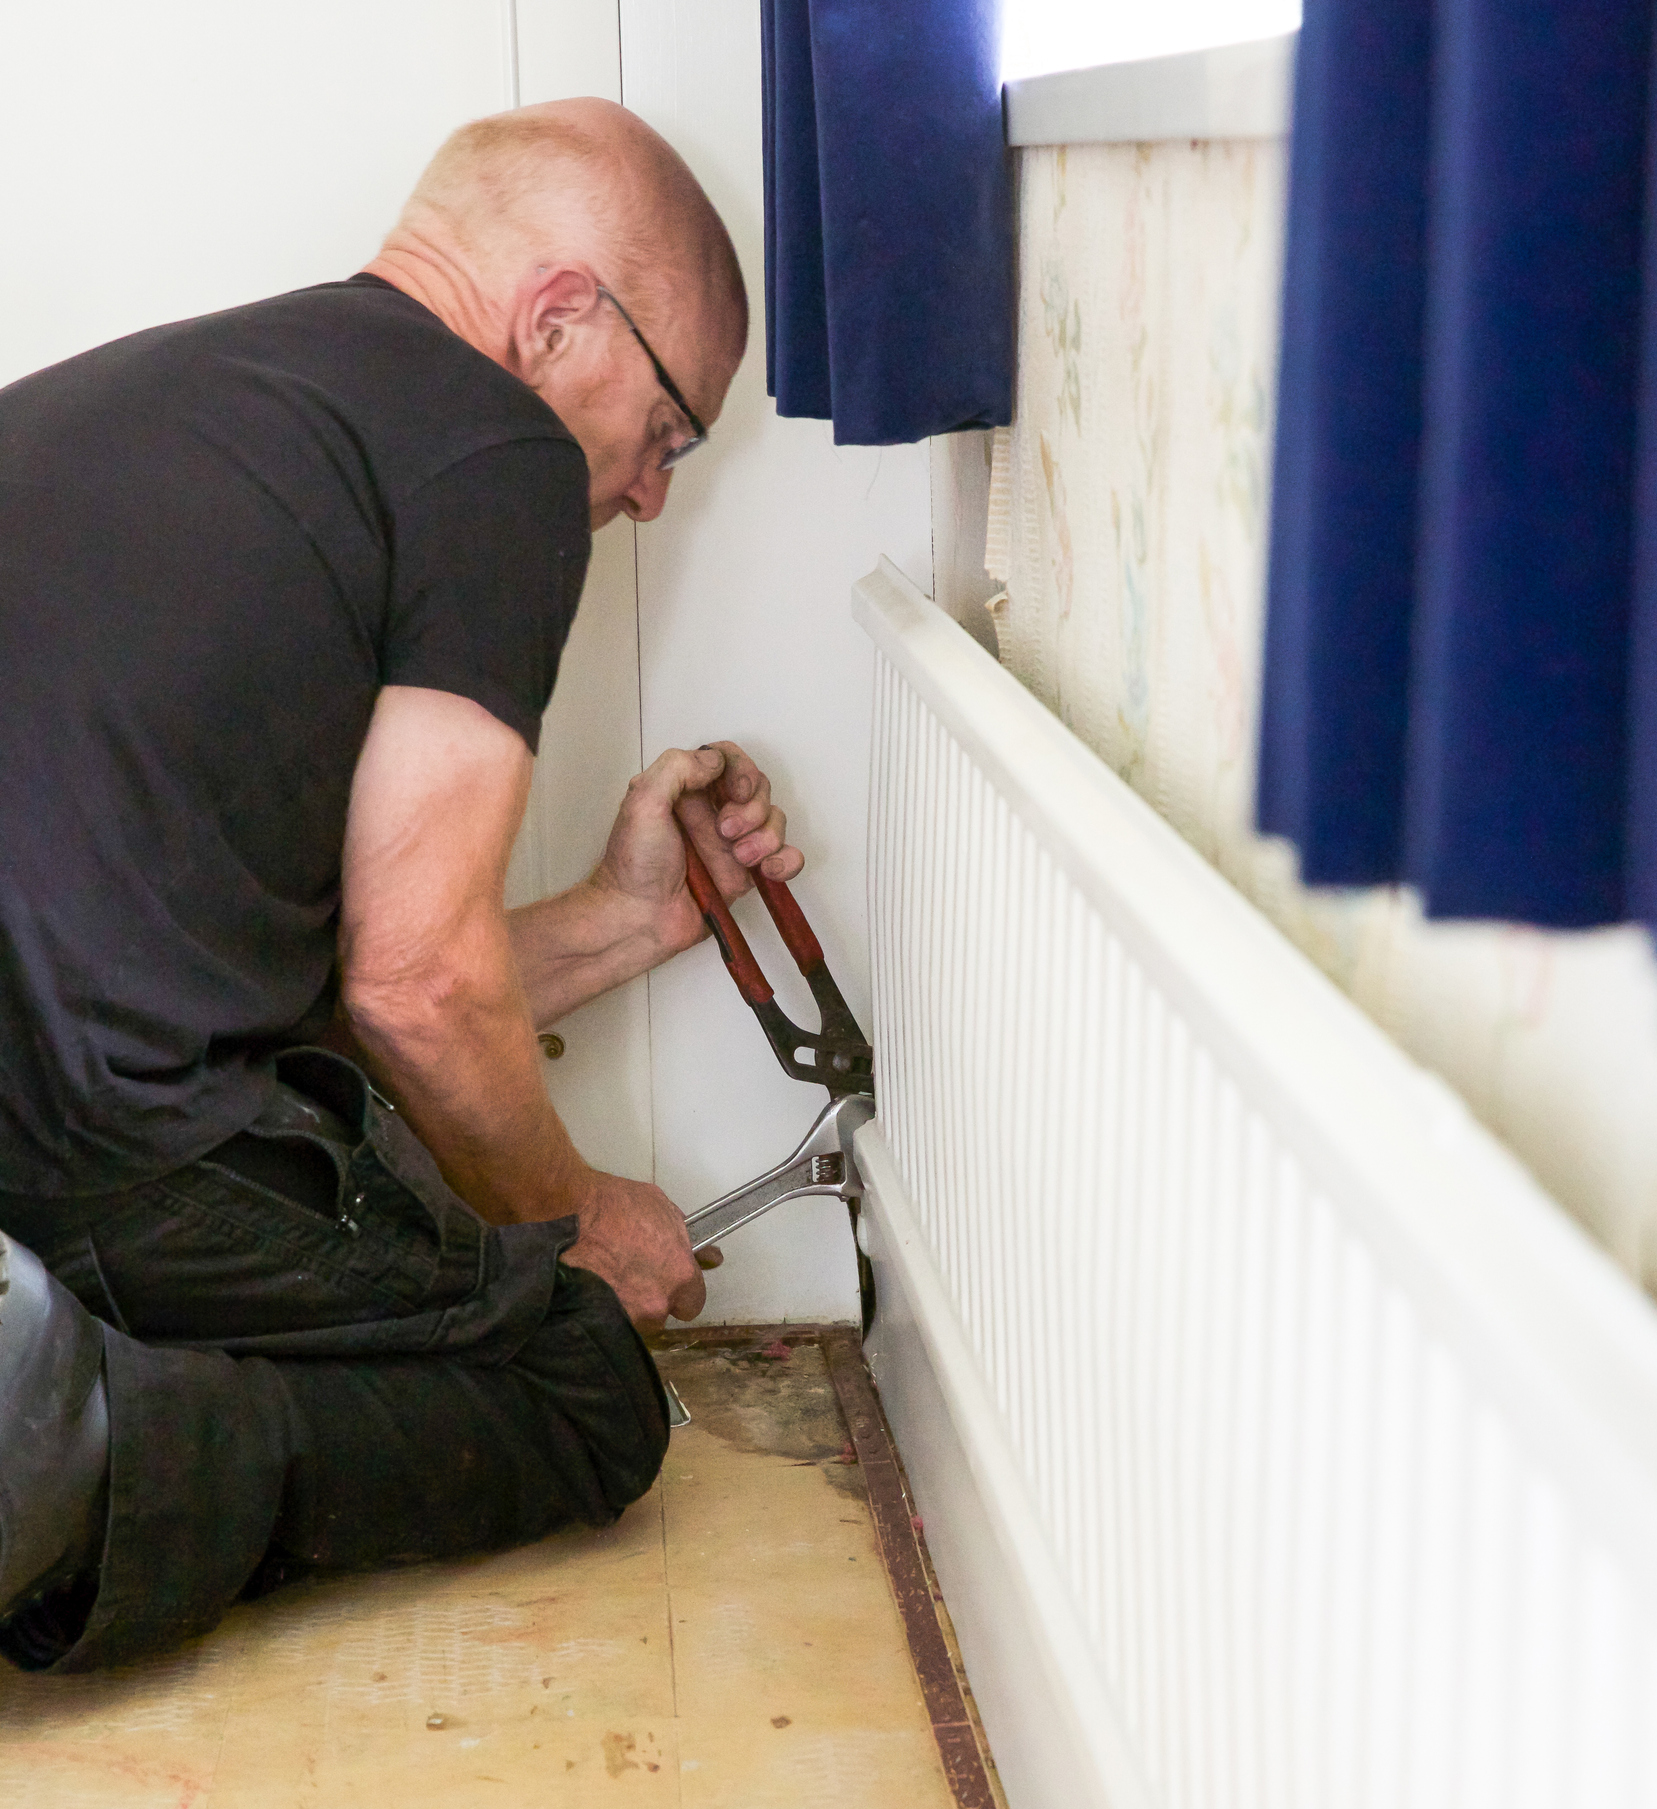 How to Remove a Radiator: Advice From the Pros